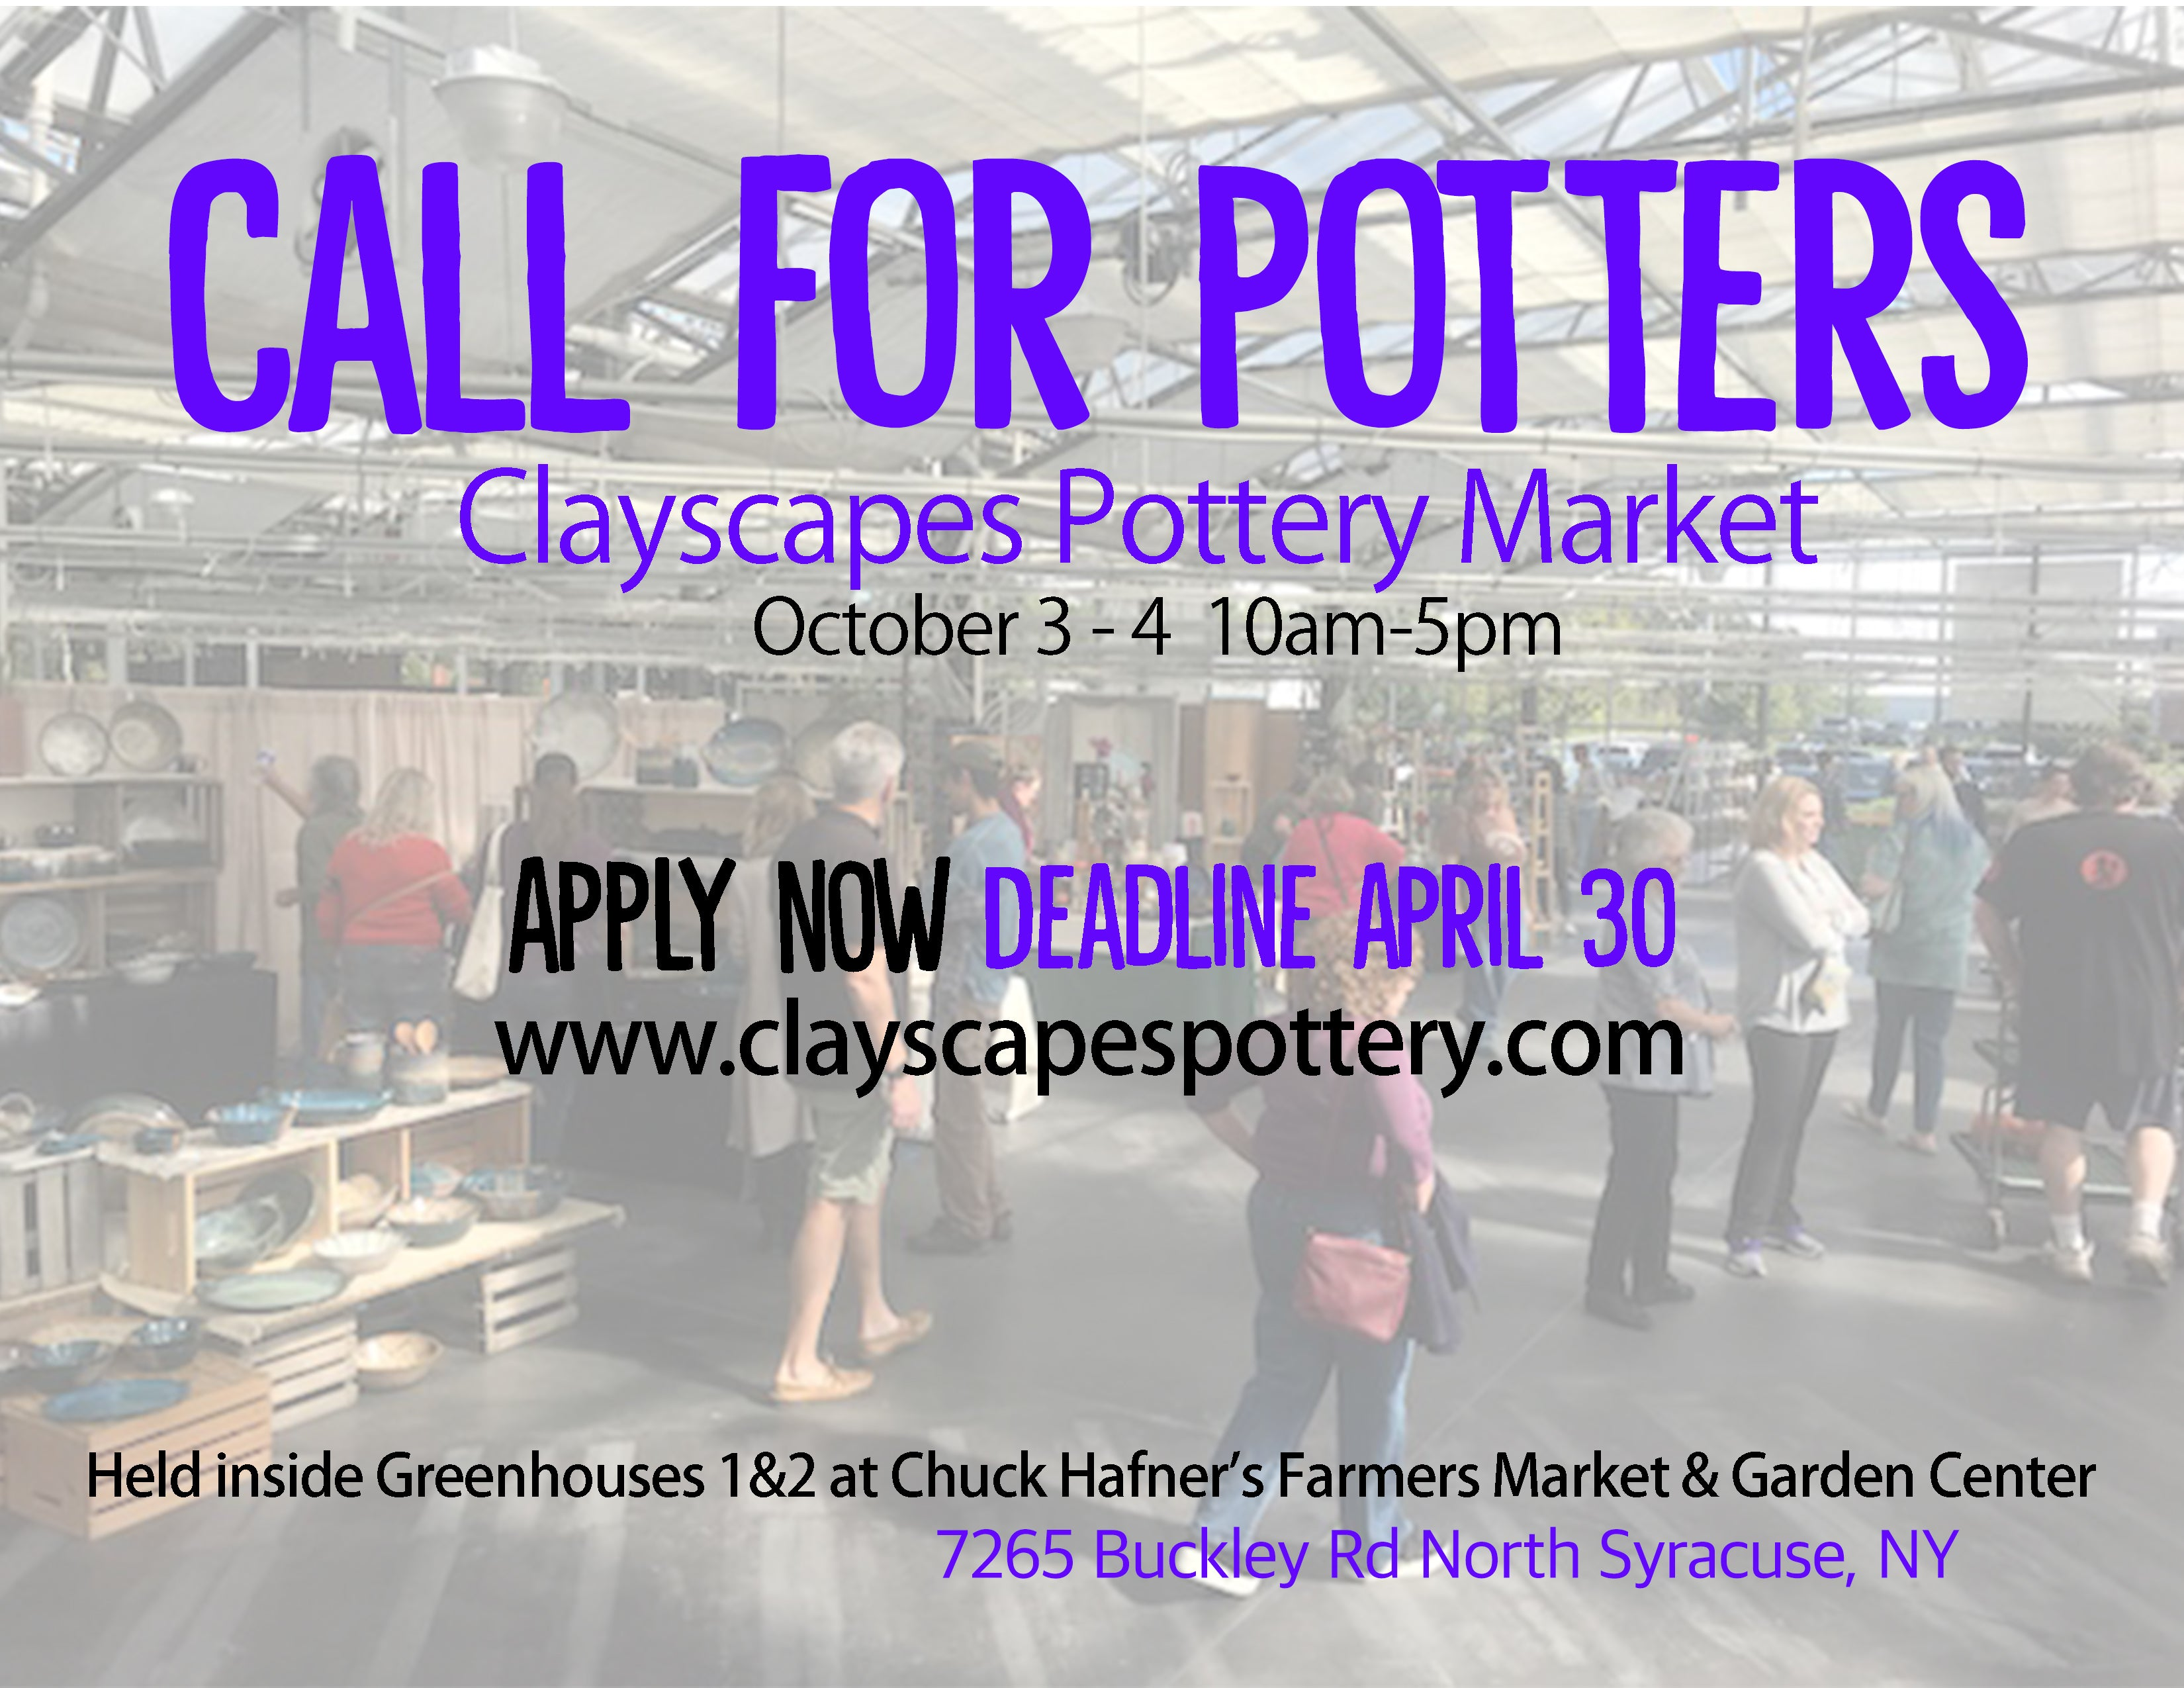 Call for potters